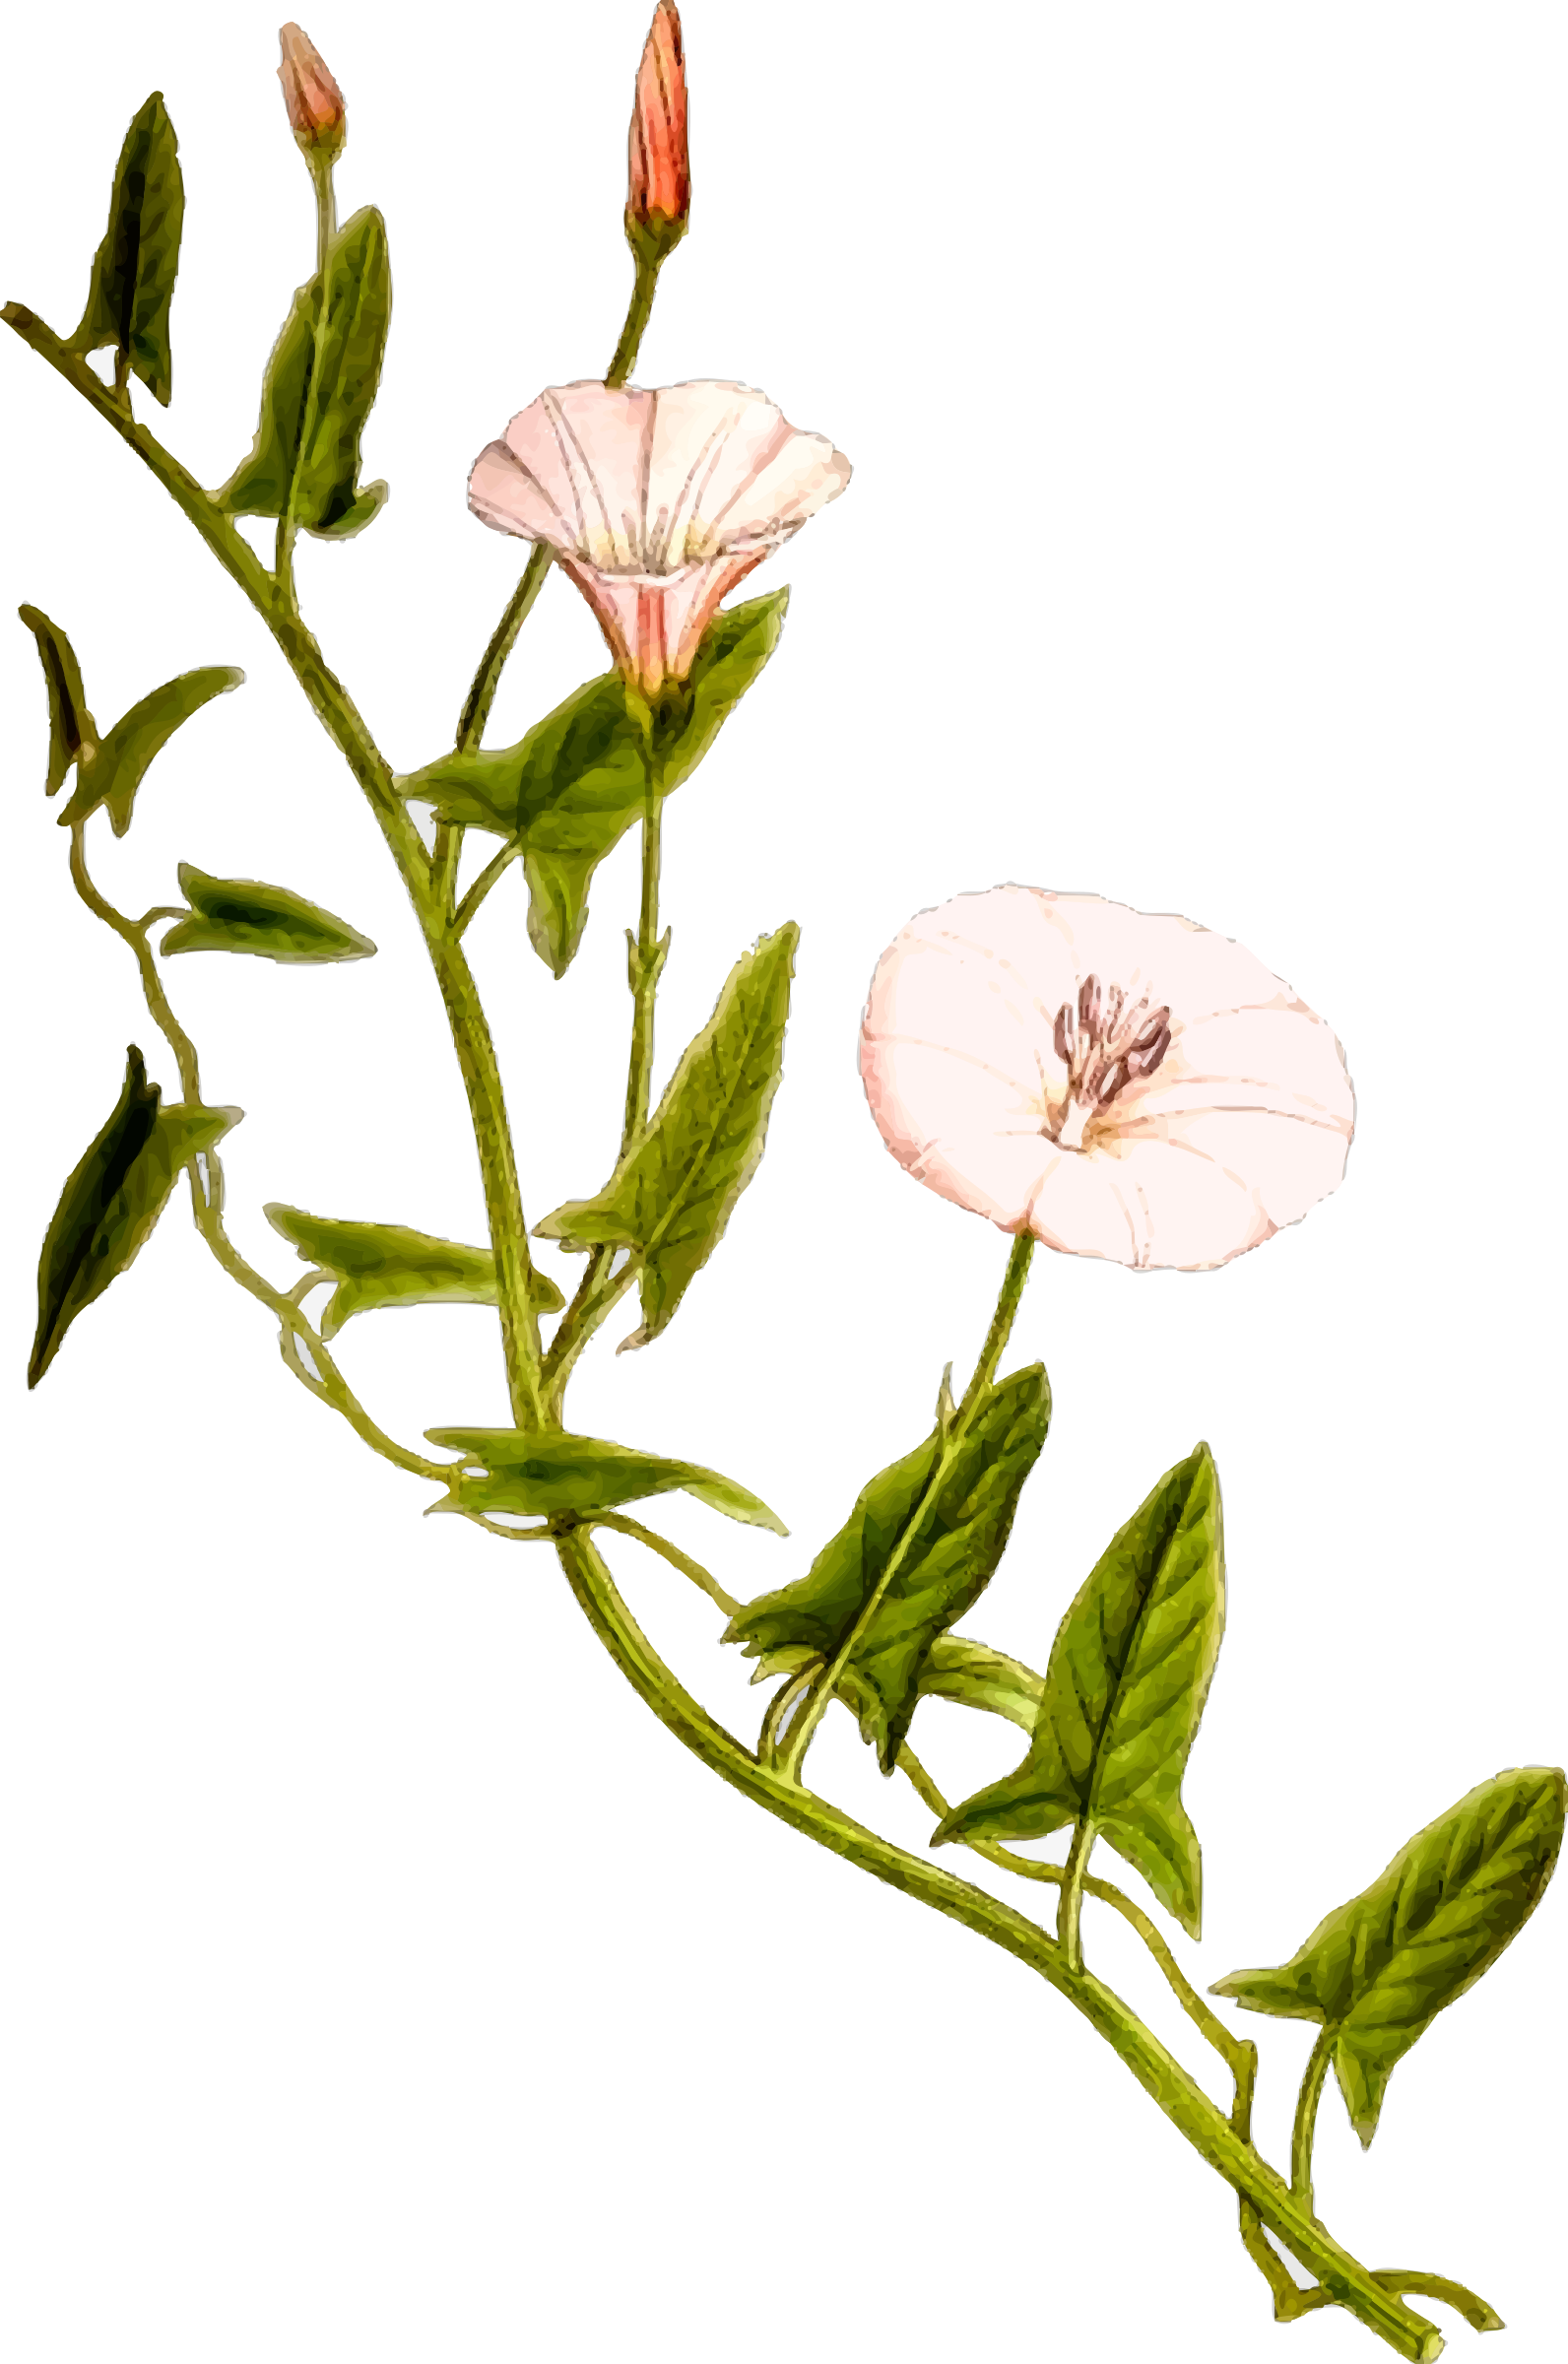 Field bindweed by Firkin